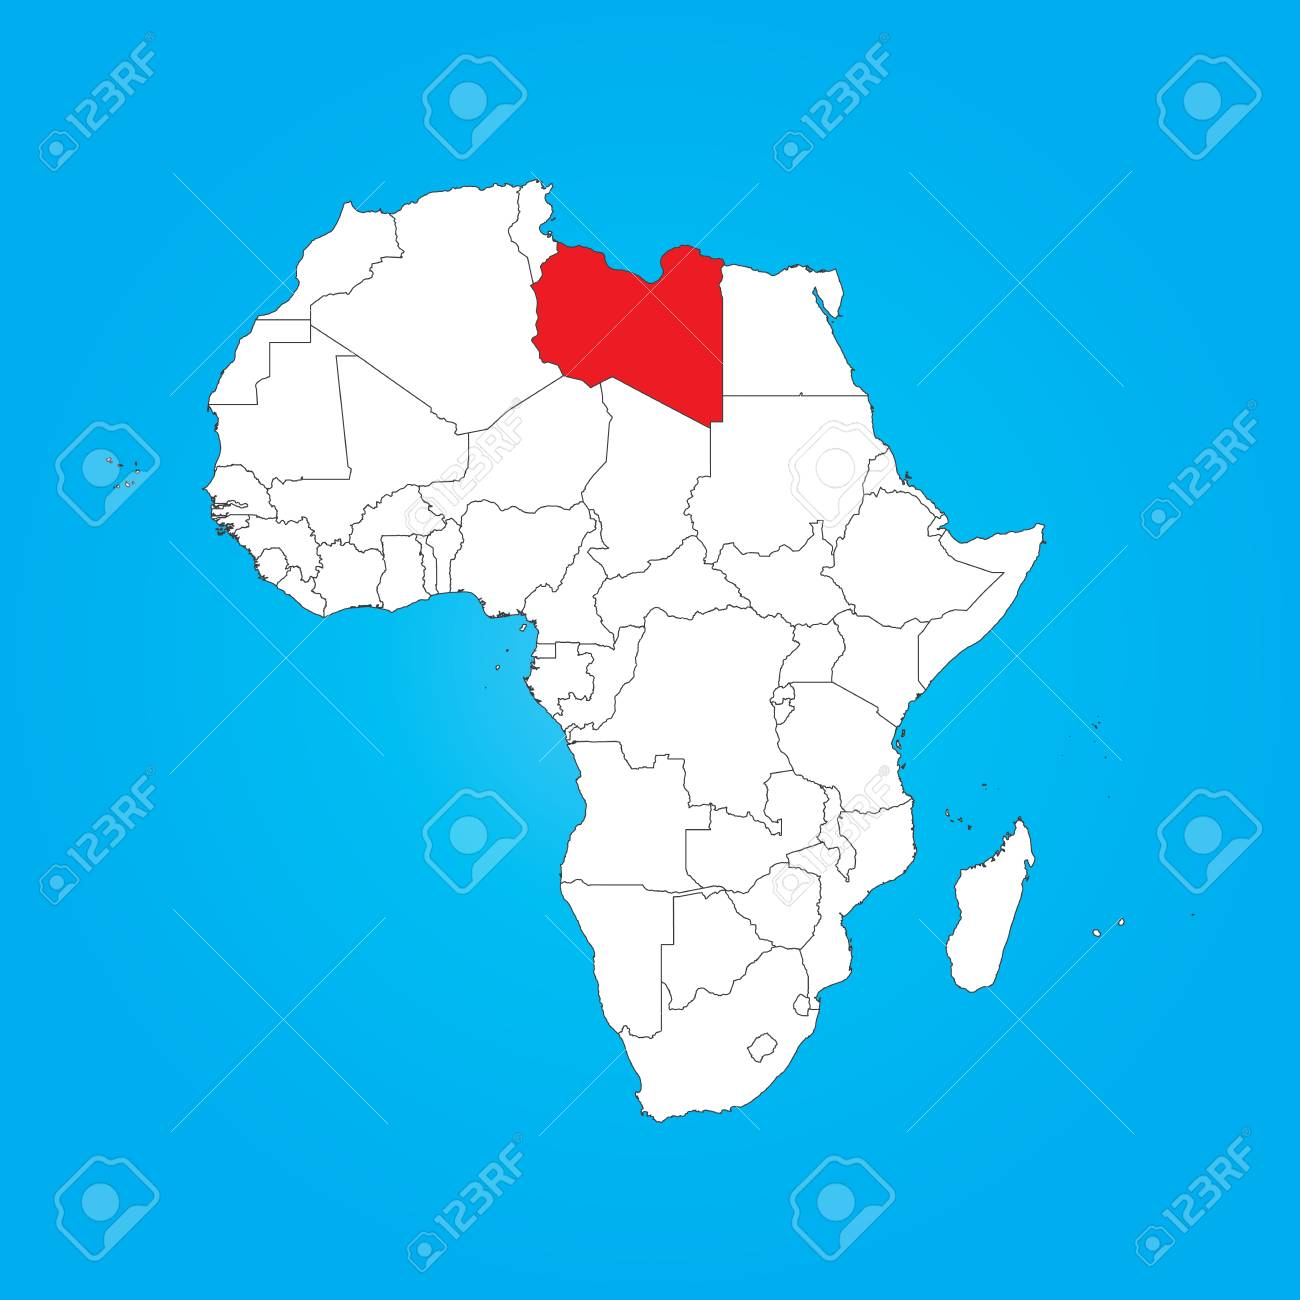 Libya On Africa Map.A Map Of Africa With A Selected Country Of Libya